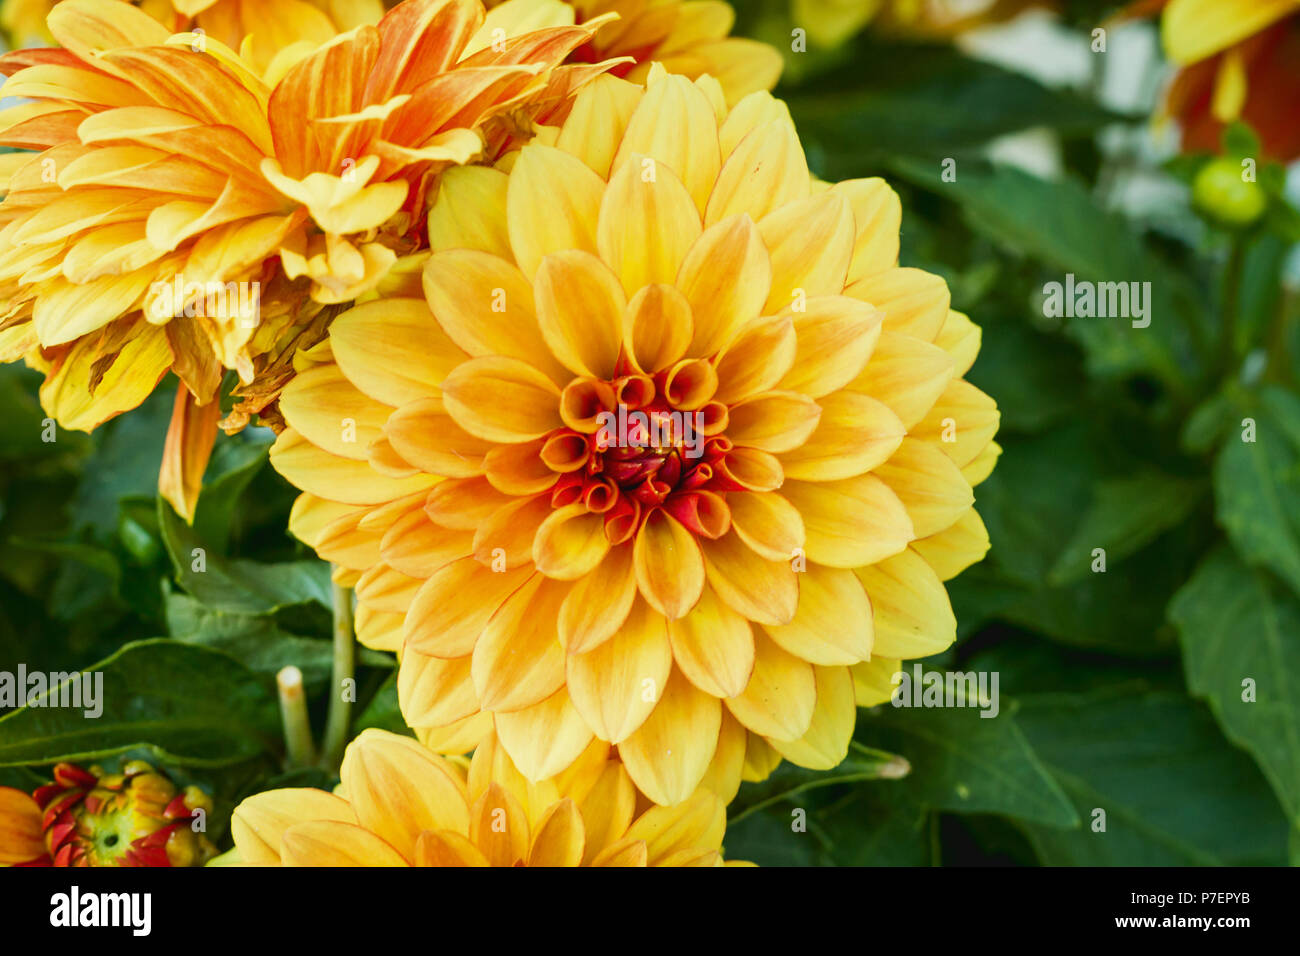 Beautiful orange and yellow chrysanthemum background or wallpaper beautiful orange and yellow chrysanthemum background or wallpaper chrysanthemum flowers close up mightylinksfo